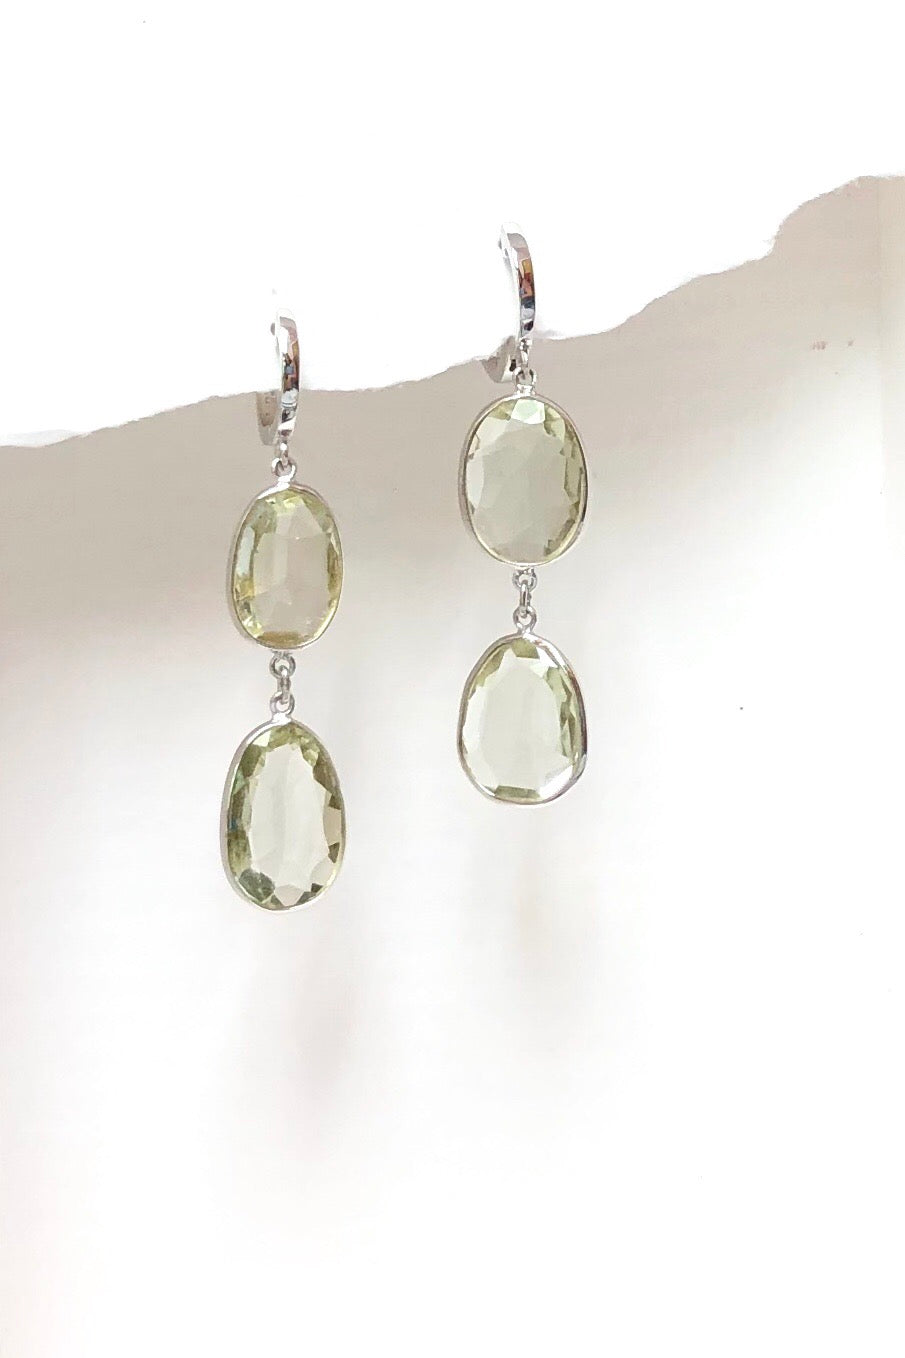 Earrings Trina in Silver and Pale Mint Quartz, semi precious gem earring